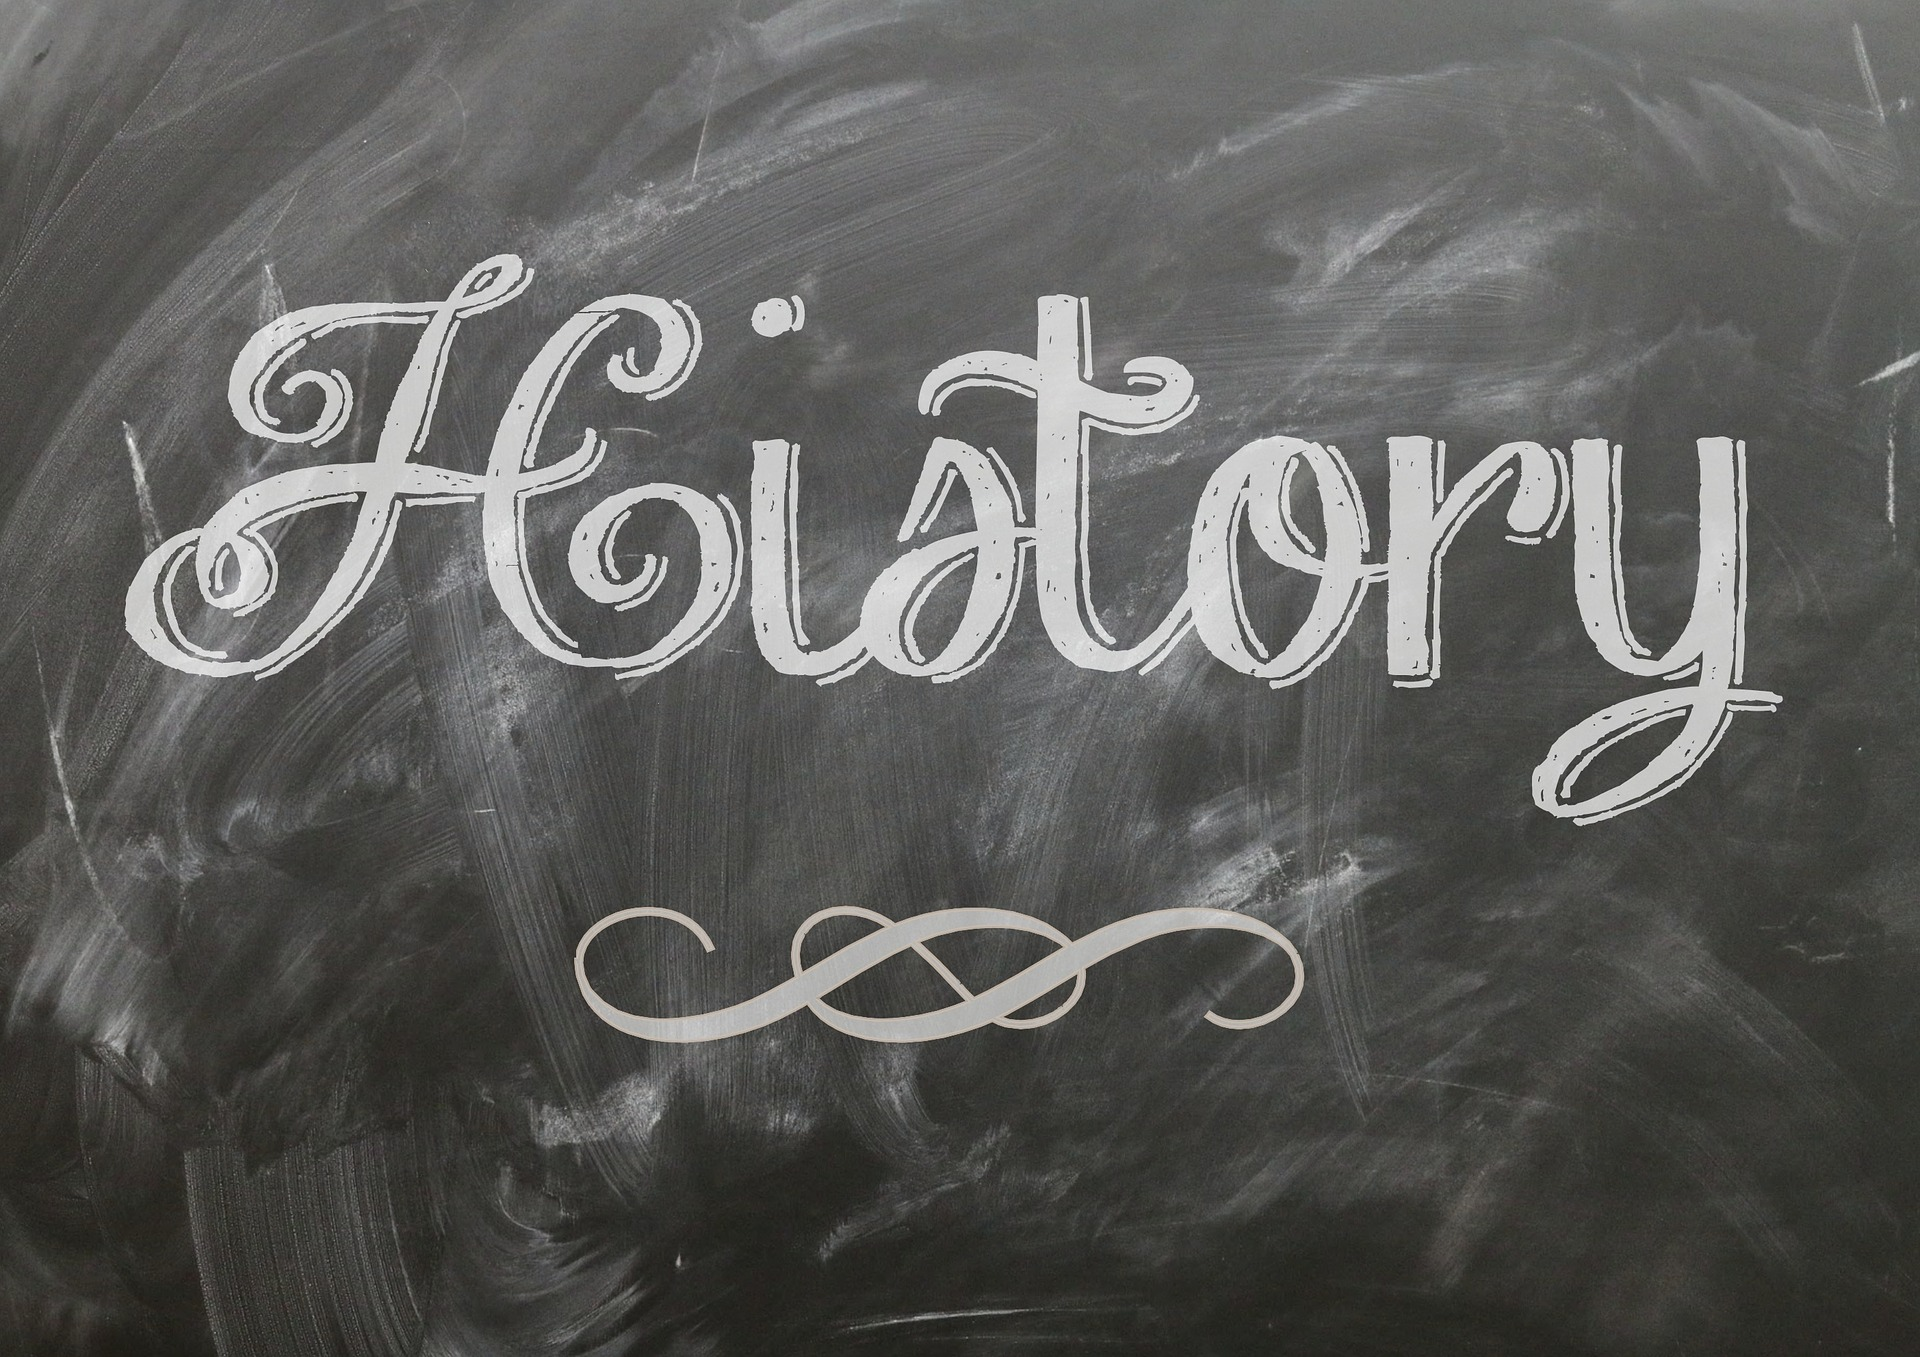 history written on blackboard